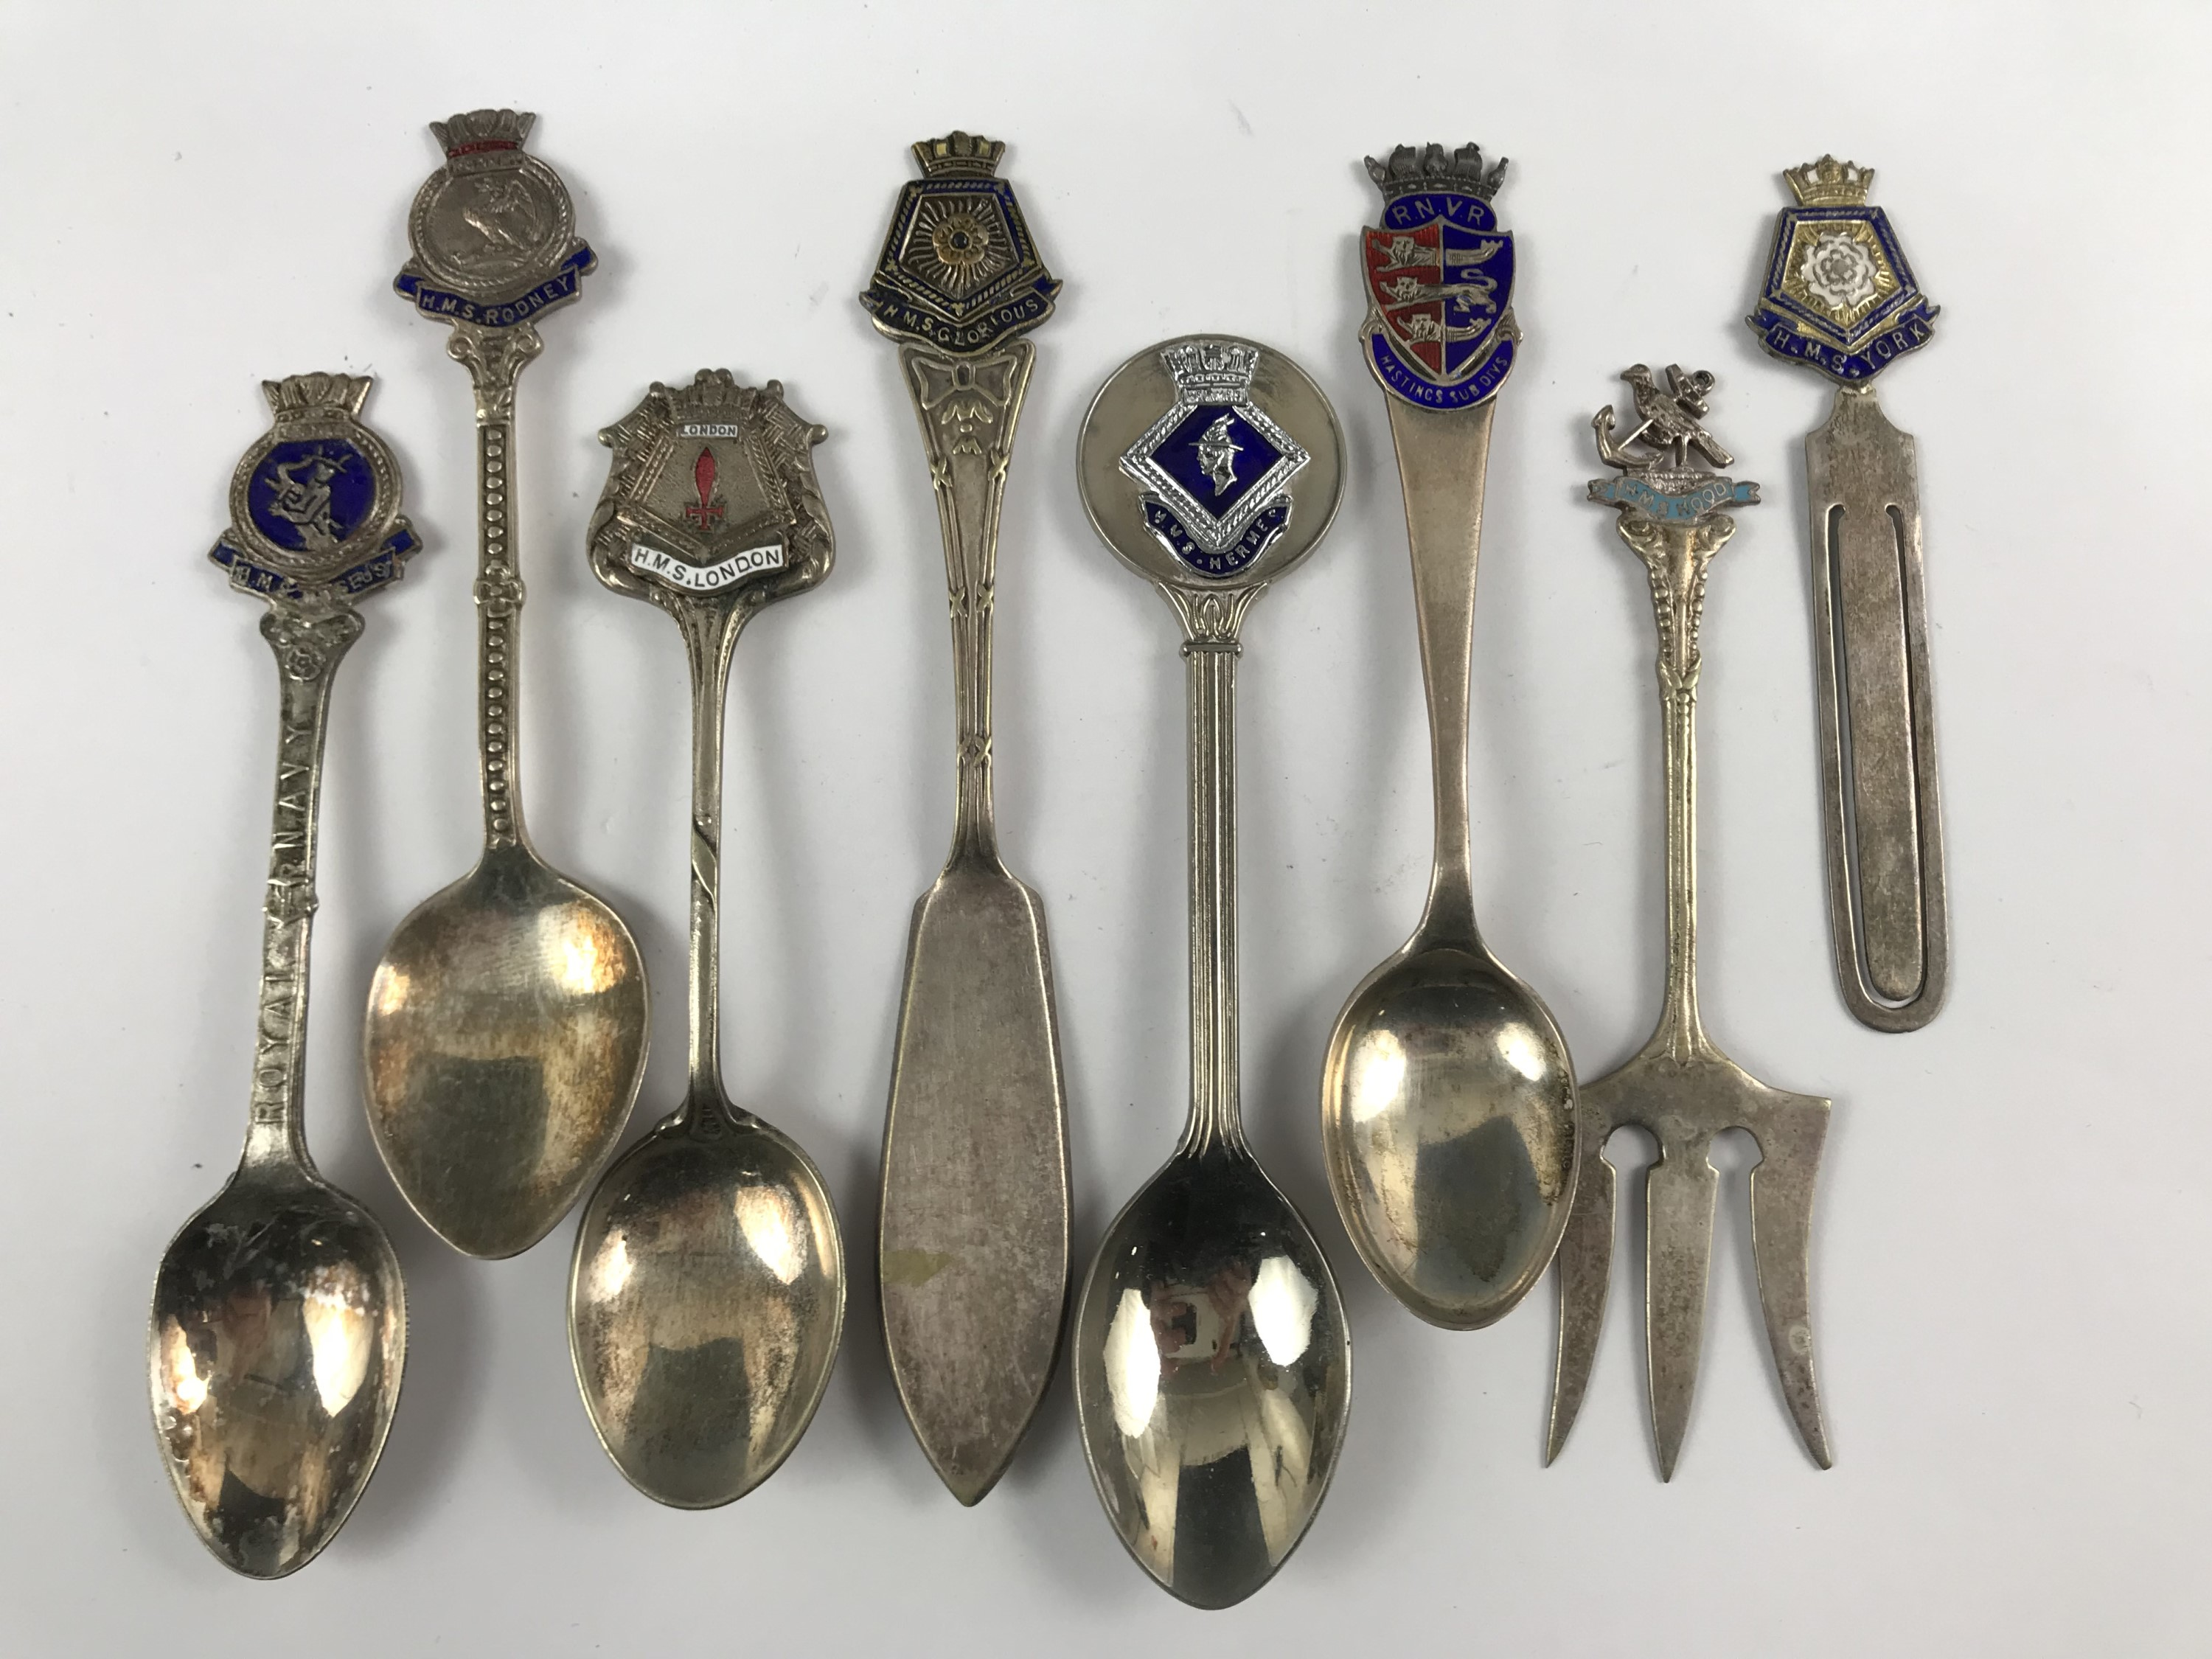 Lot 37 - A number of Royal Navy and similar commemorative spoons and a book mark